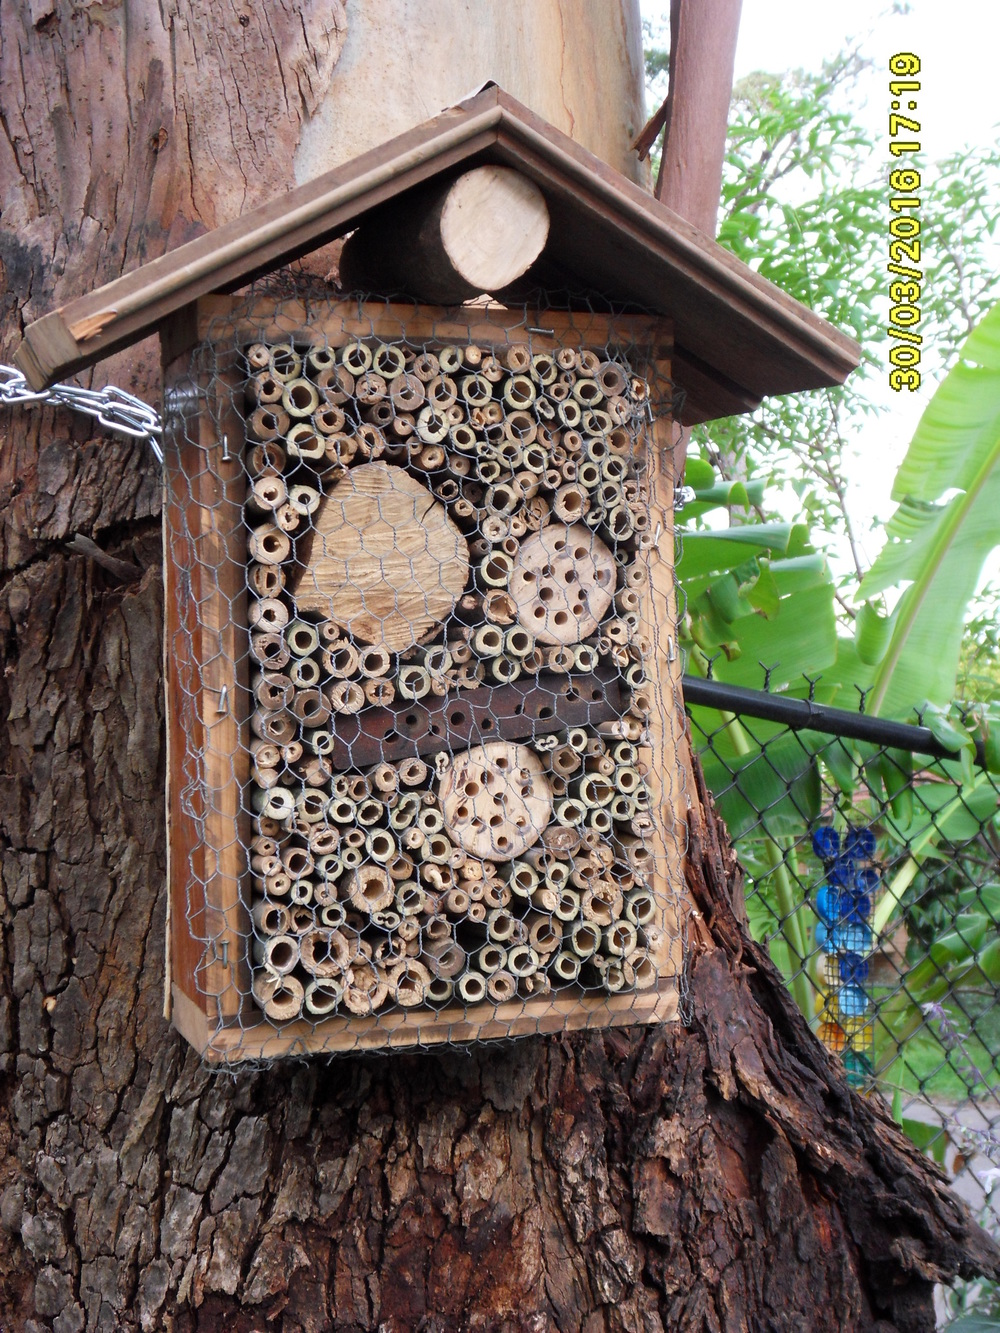 The new native bee house at PermaPatch Community Garden